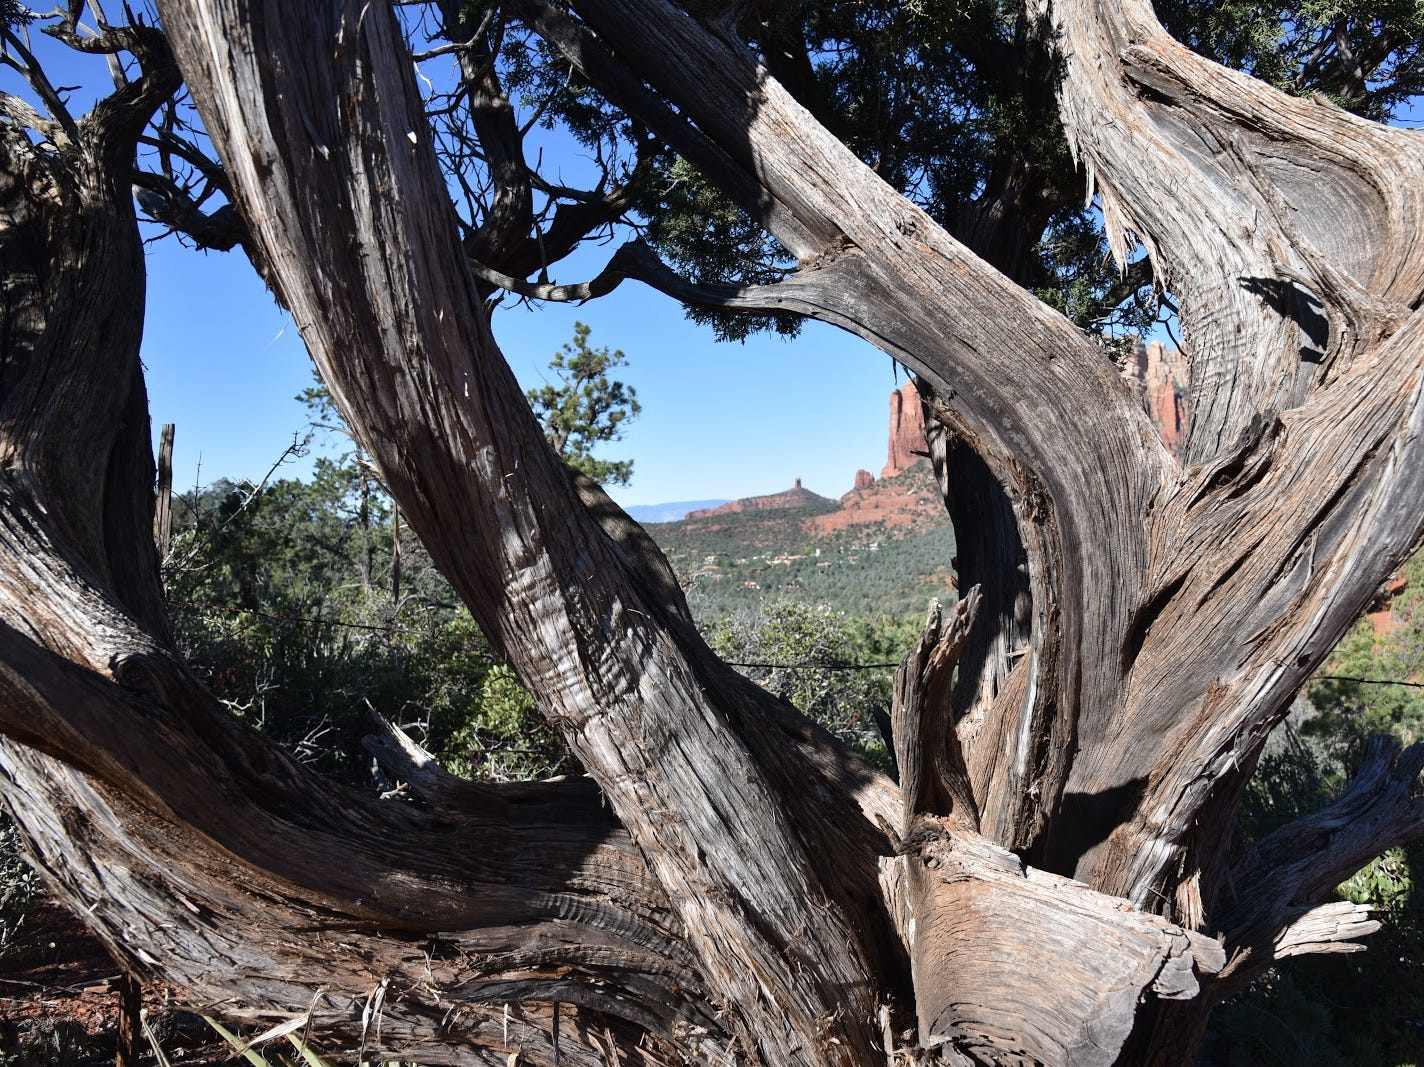 A juniper-framed view on Cibola Pass Trail.